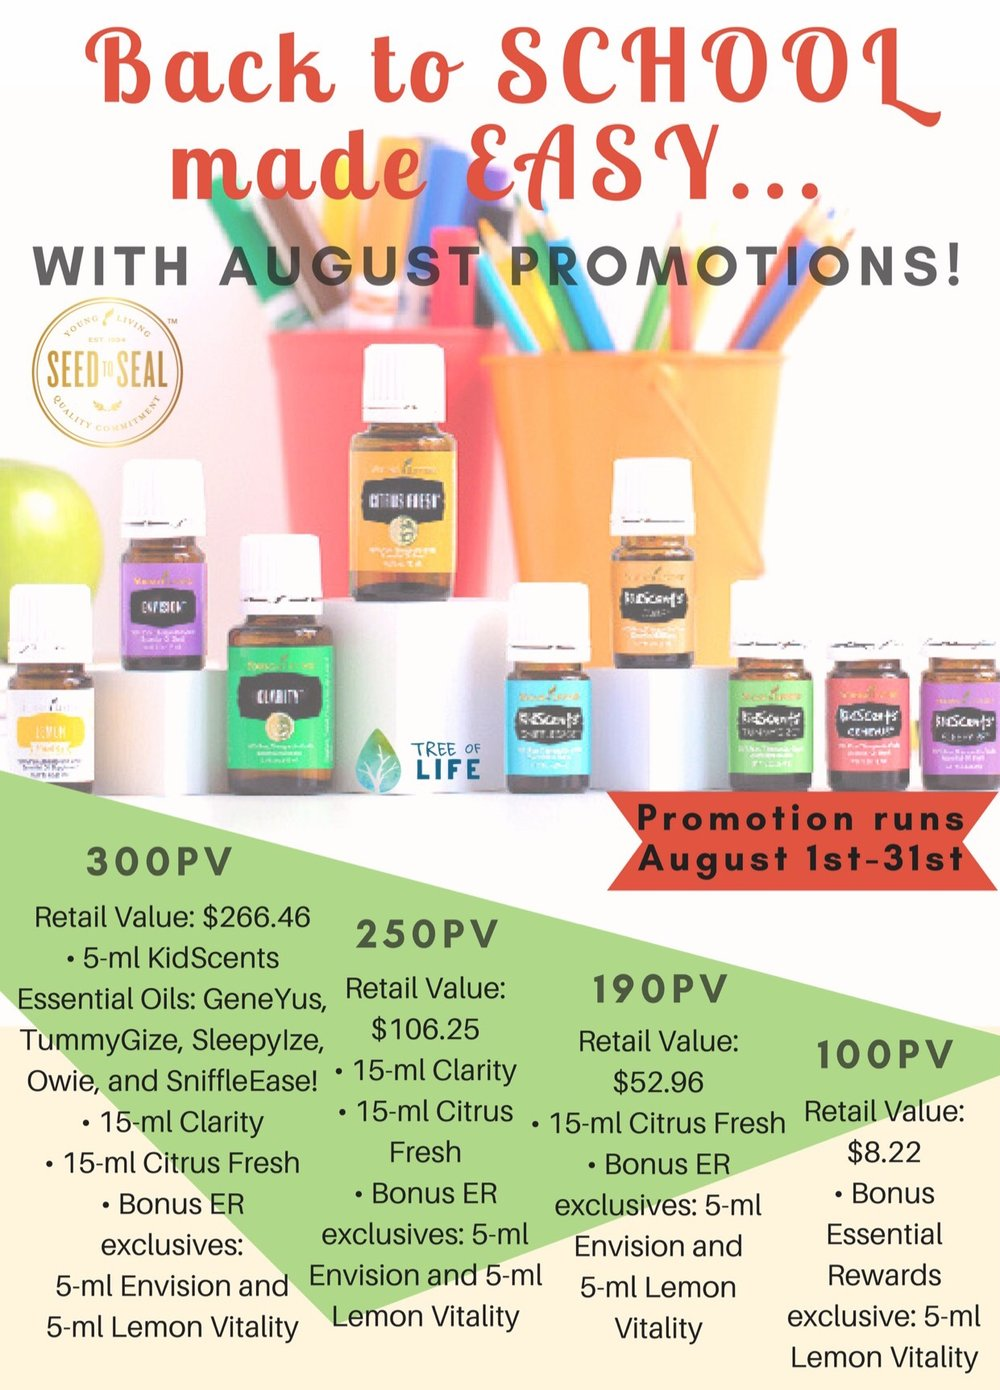 Oily mamas: we love how this promo makes checking off our favorite back-to-school oils easy!